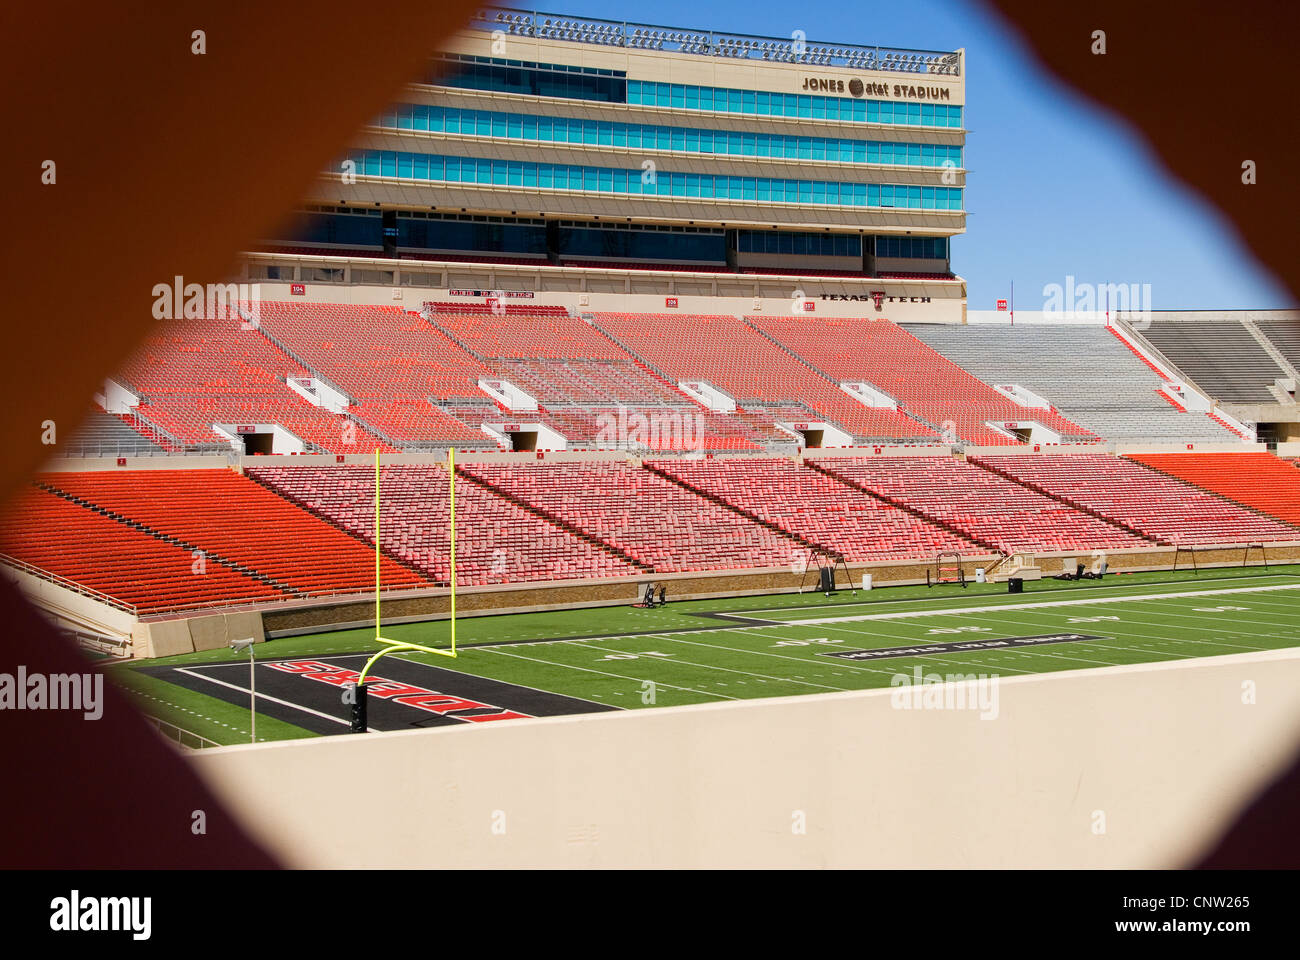 Texas Tech Football Stadium In Lubbock Tx Stock Photo Alamy